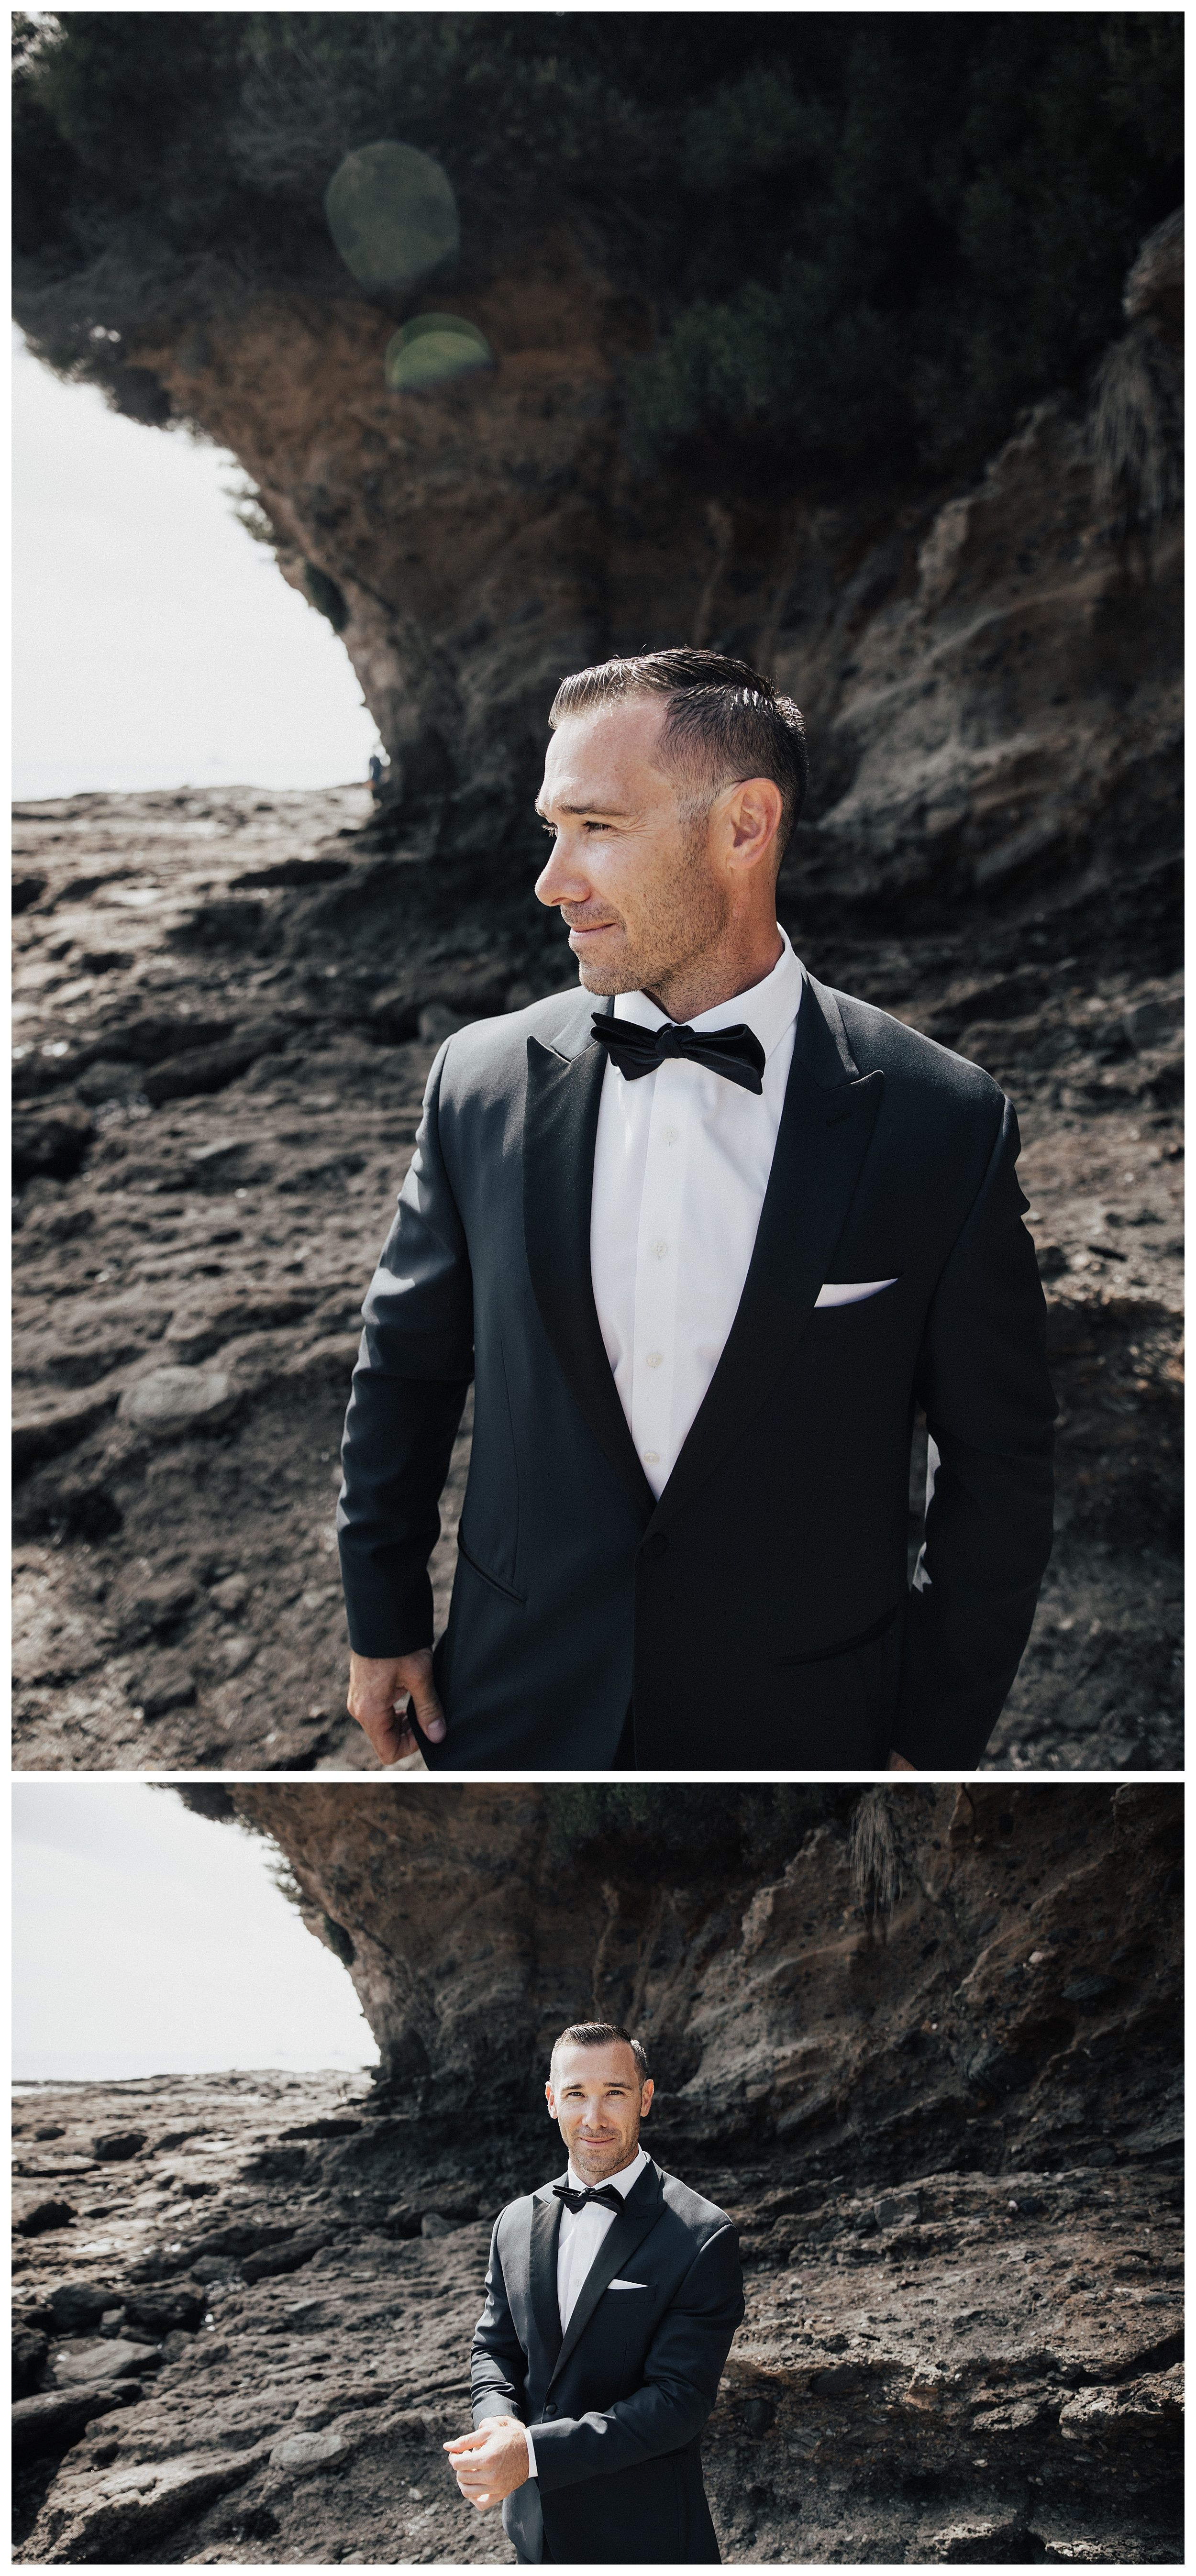 groom on beach, groom style, groom with bowtie